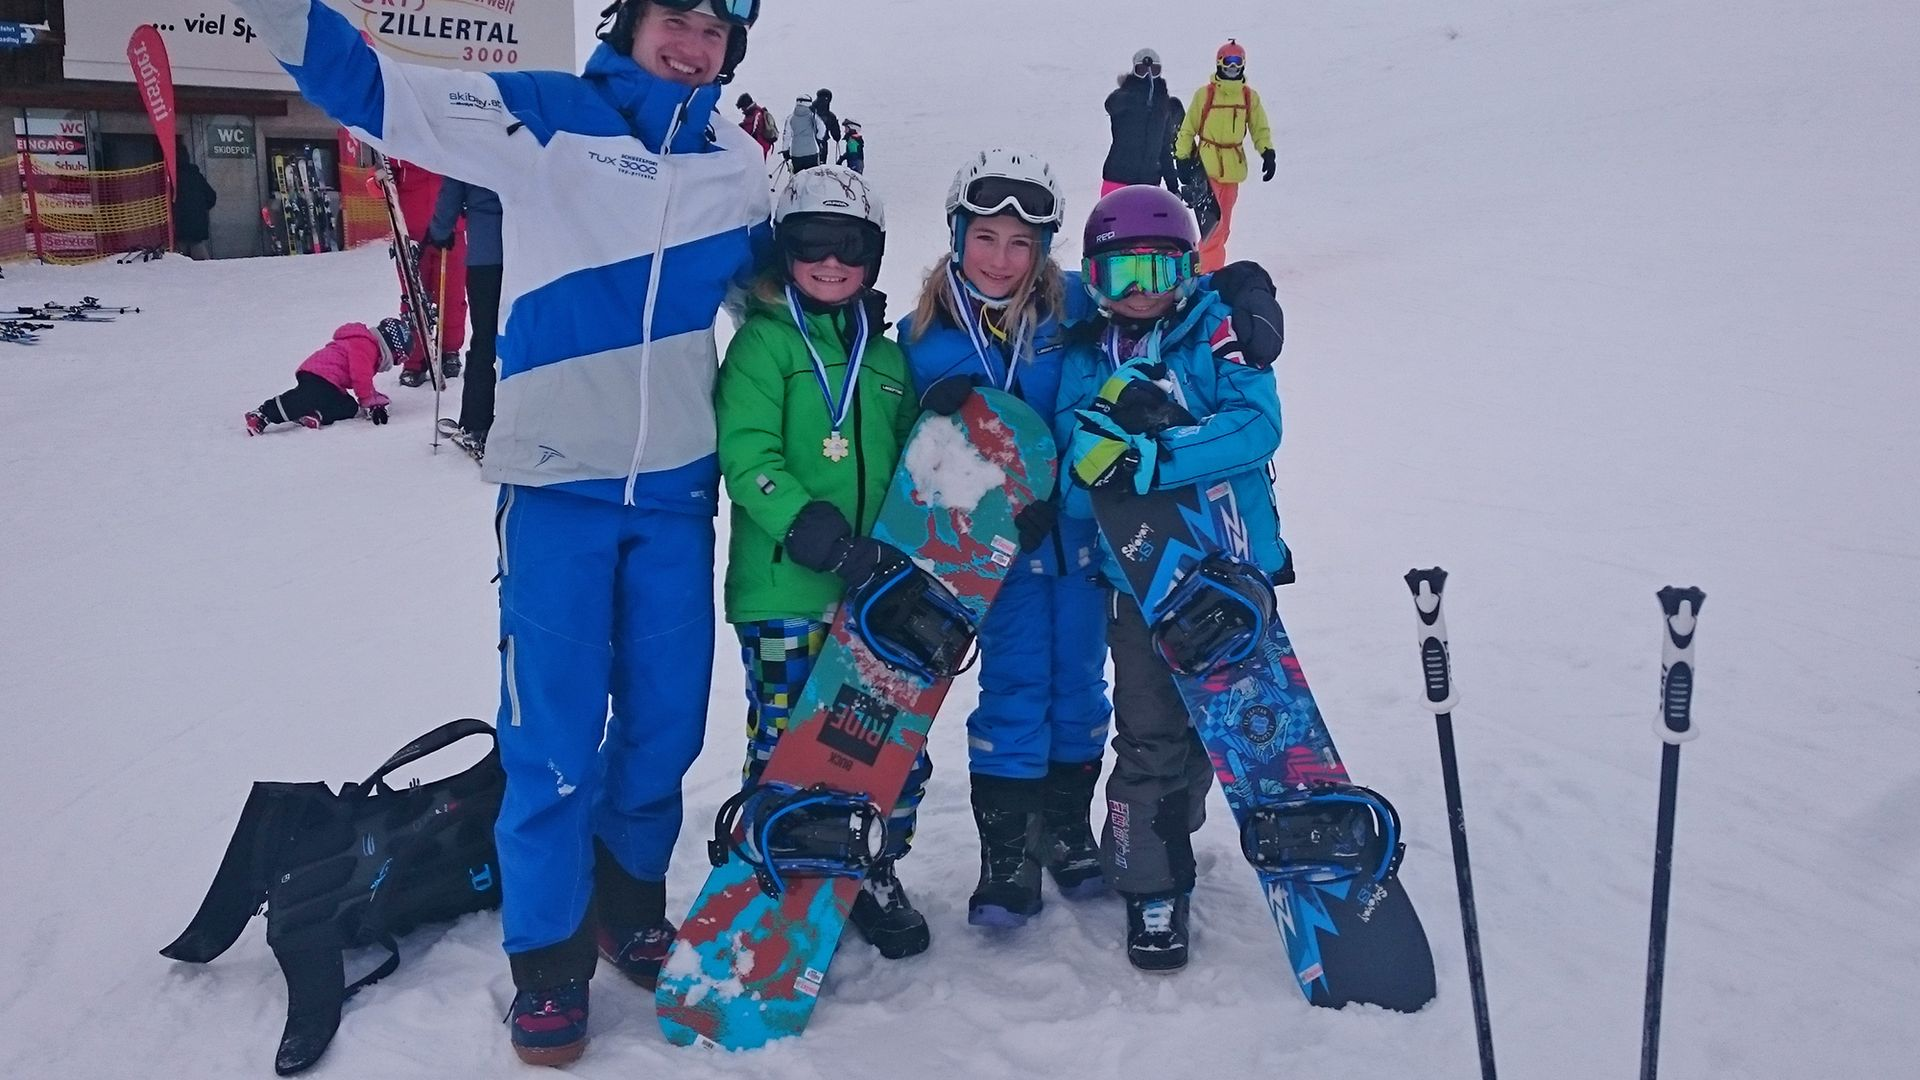 Snowboarding lessons for beginners and advanced learners